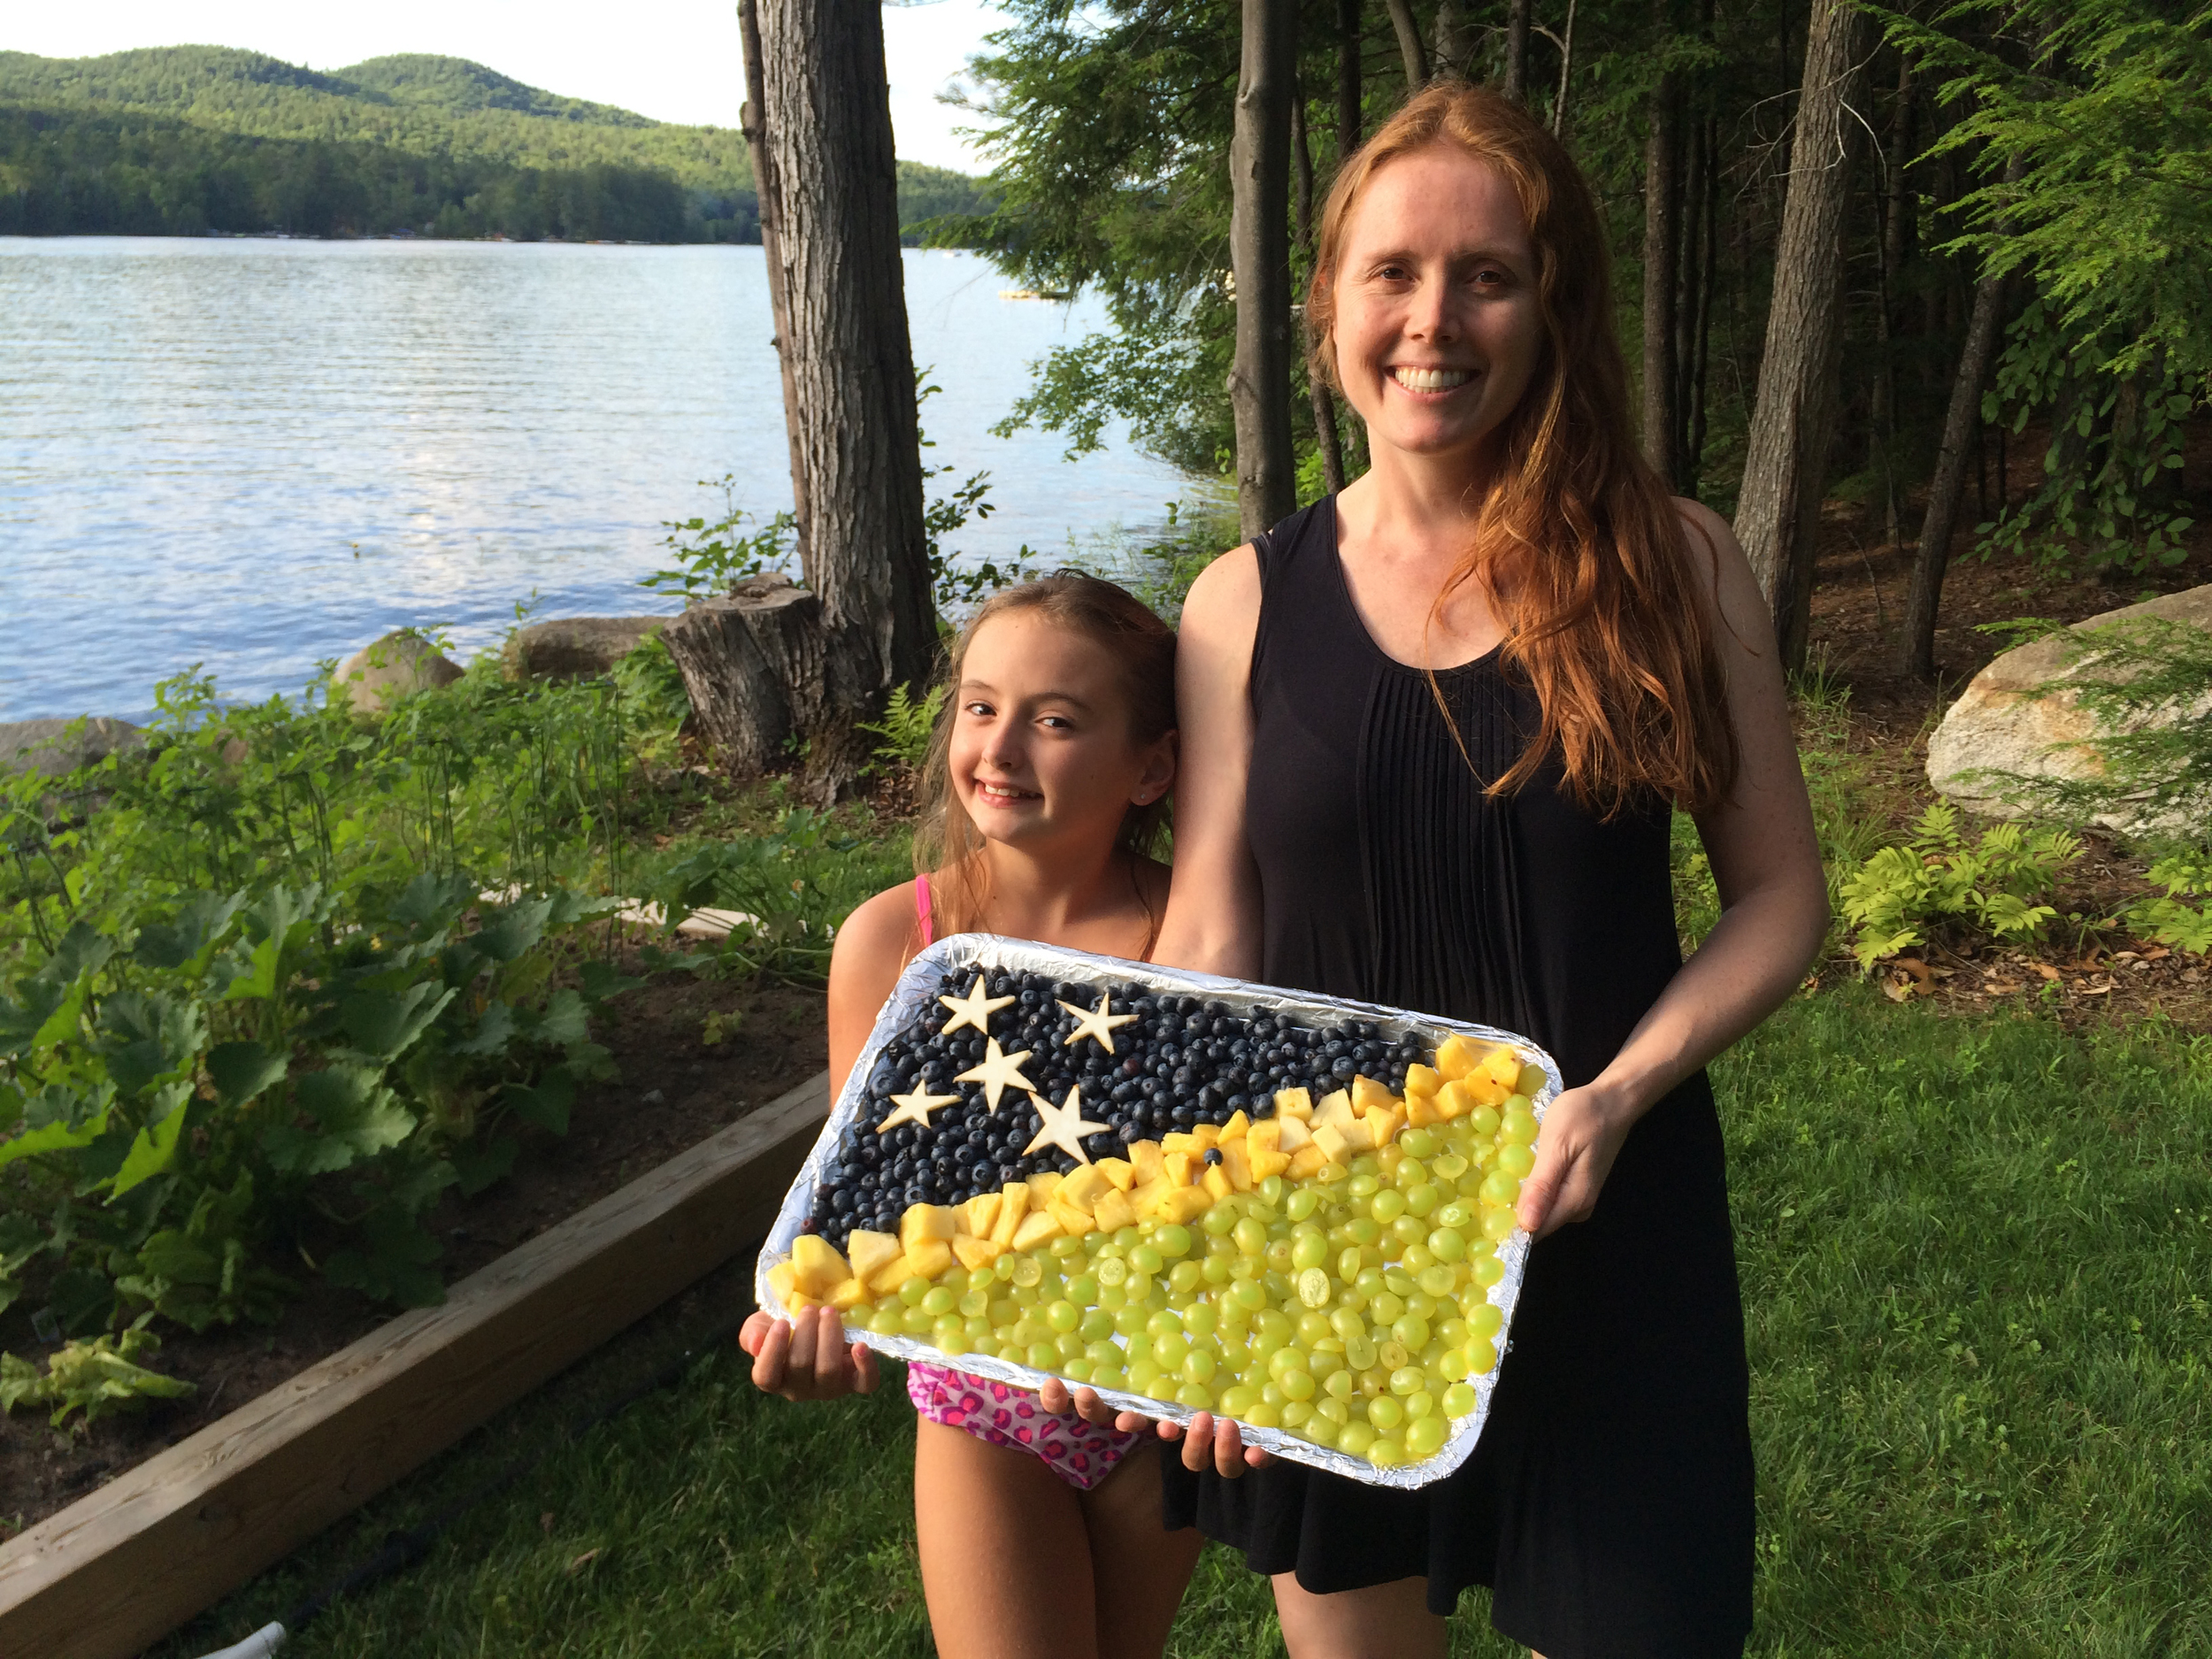 Amber and Heather create a flag out of fruit for the people of the Solomon Islands on their independence day (July 7).